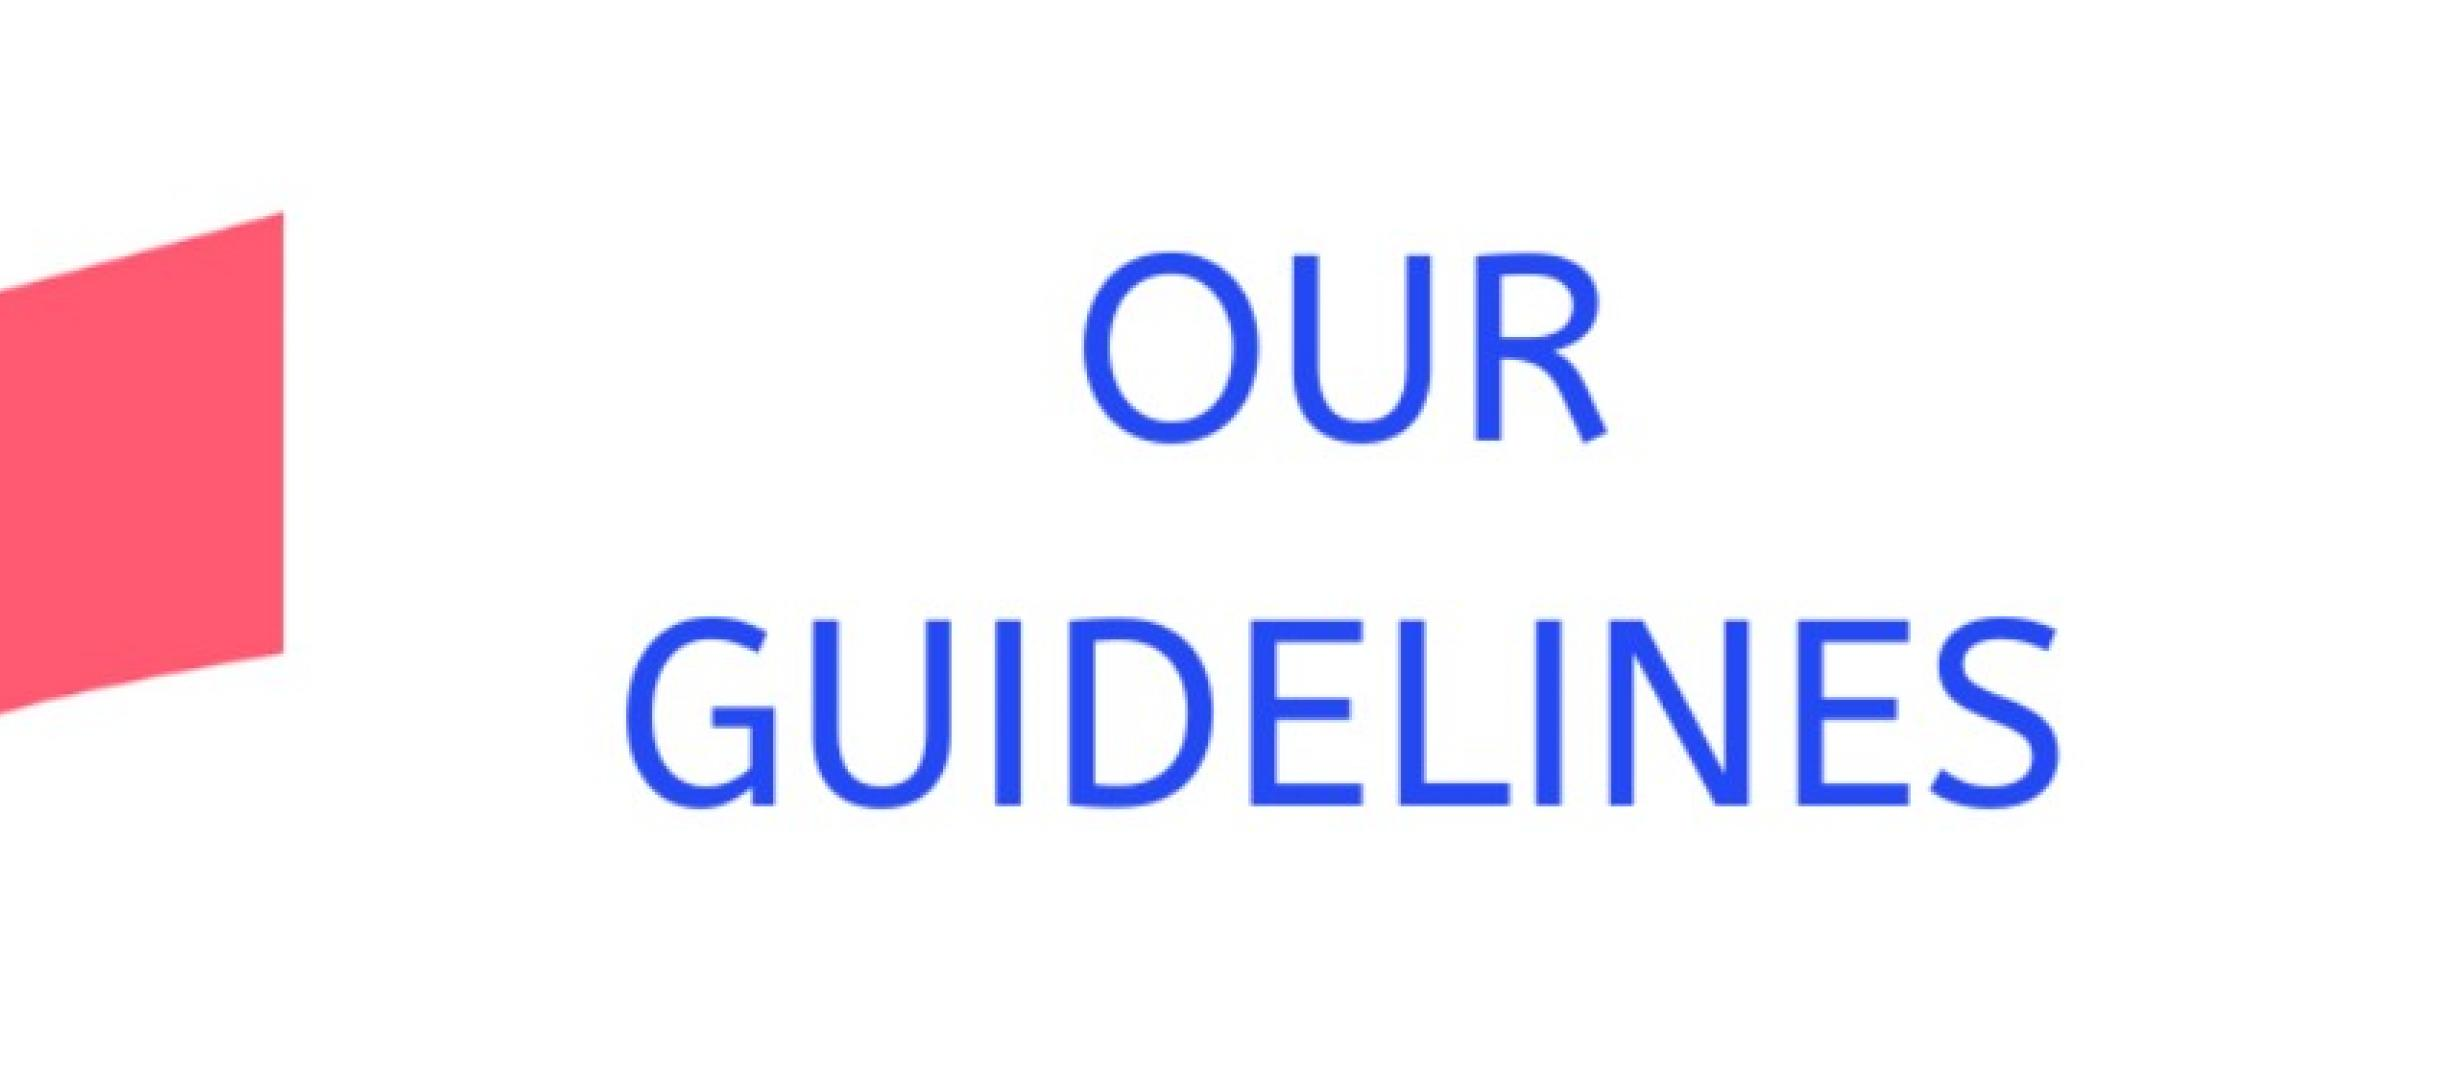 our guidelines logo